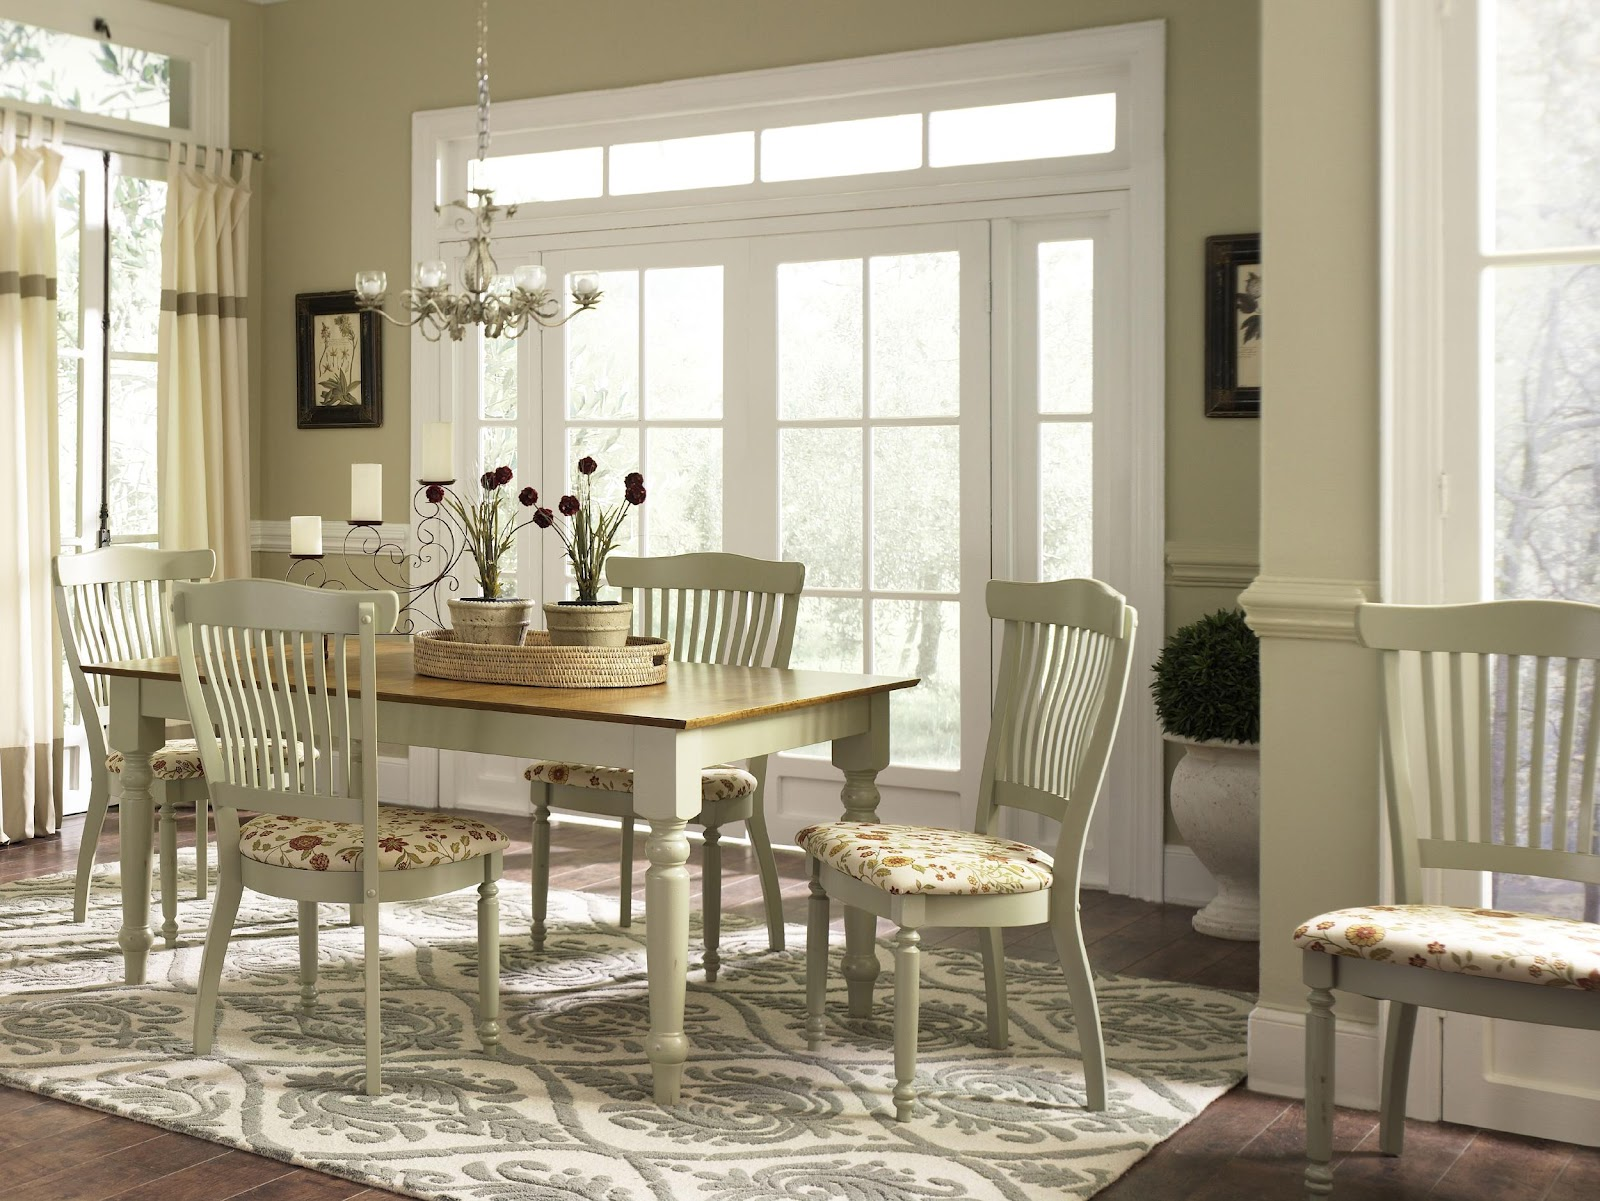 French Country Dining Room Furniture Sets French Country Dining Room Ideas With Chandelier And Wooden Table